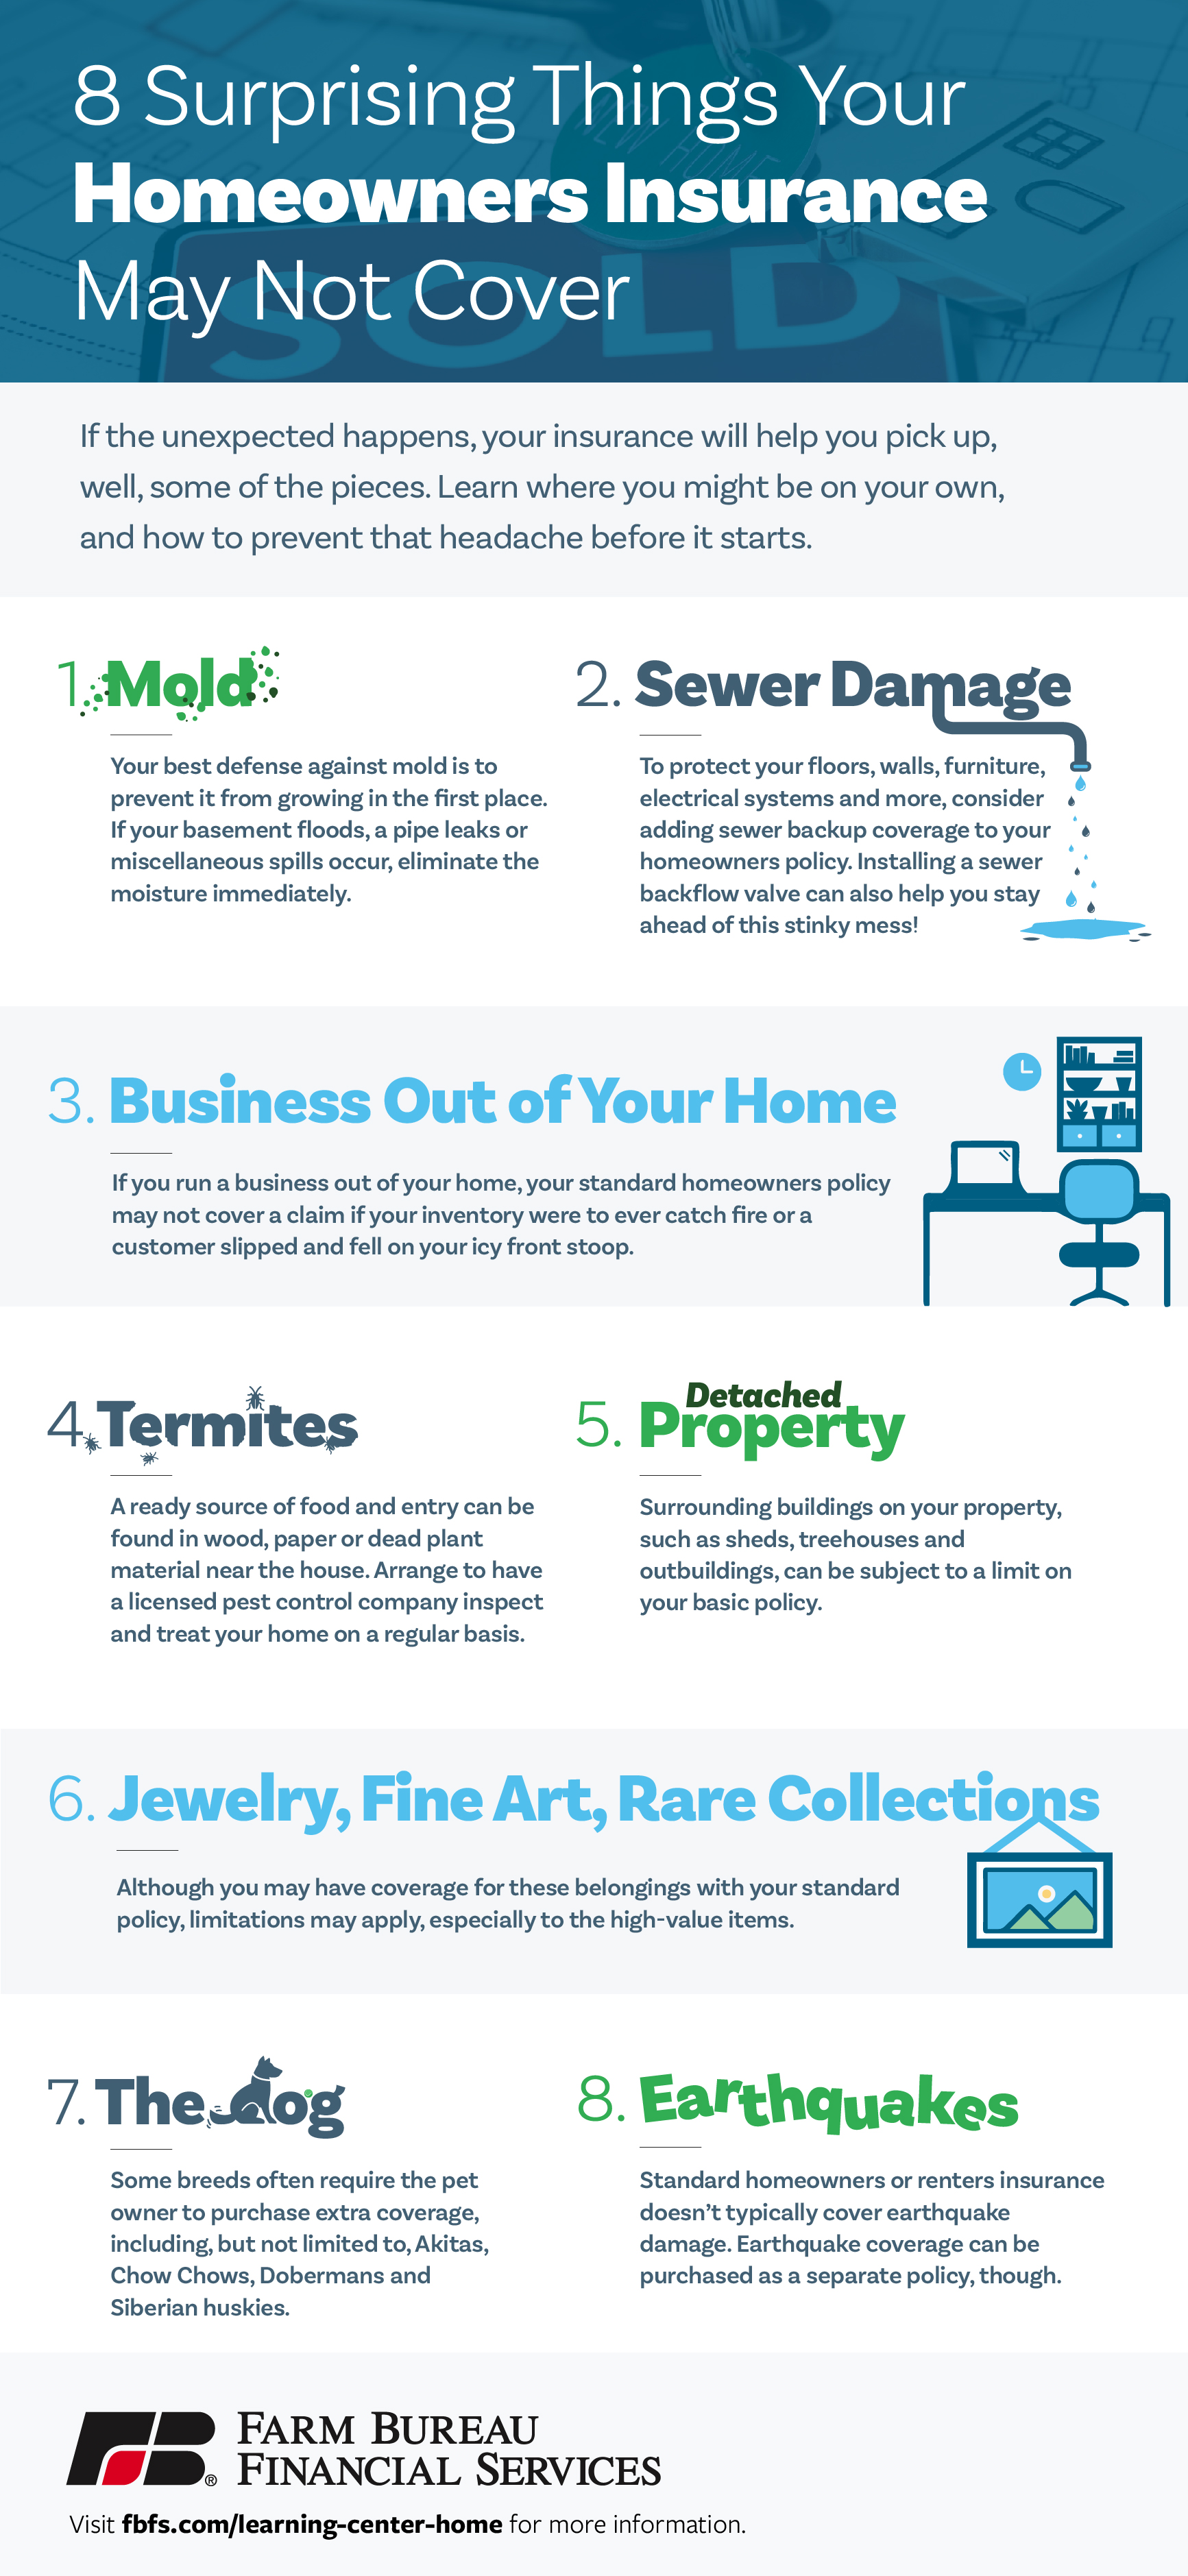 06_29 Homeowners insurance Infographic-01[1]